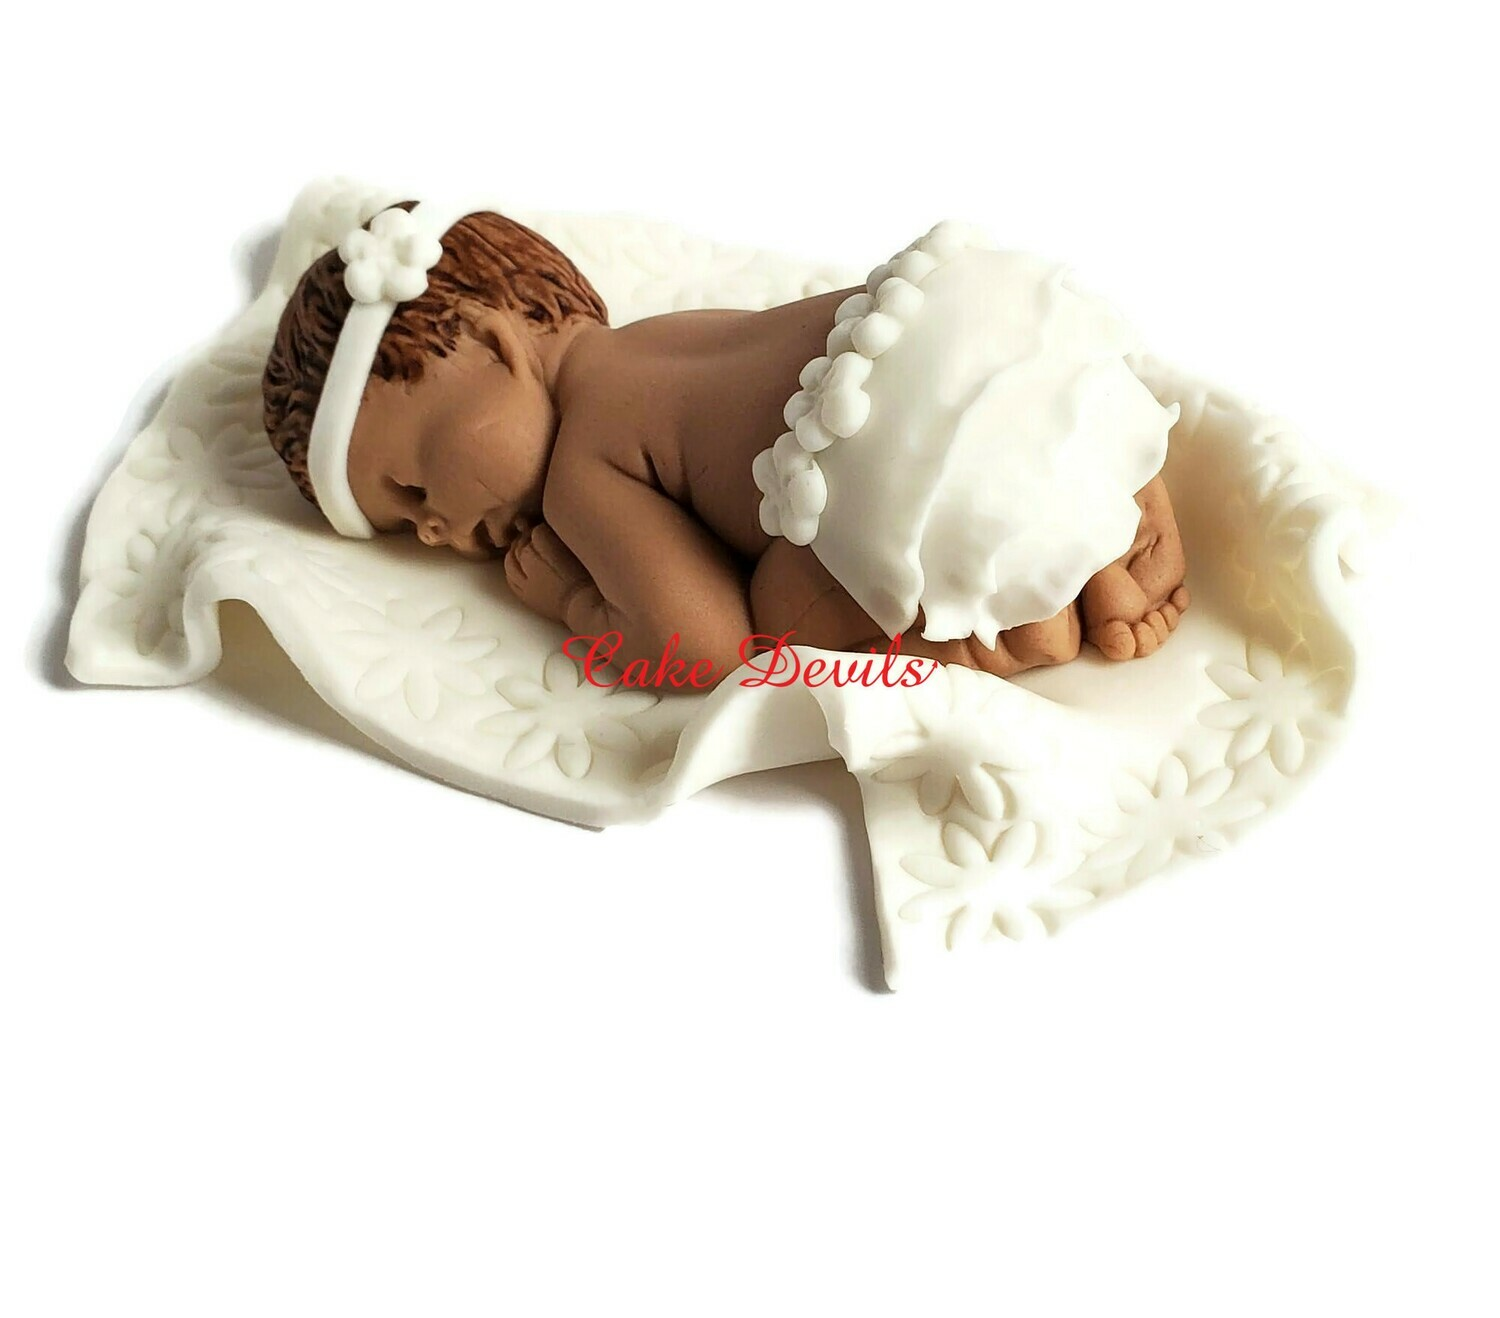 Fondant Baby girl with ruffled diaper skirt for baptism, christening or baby shower cake topper and matching Fondant Booties